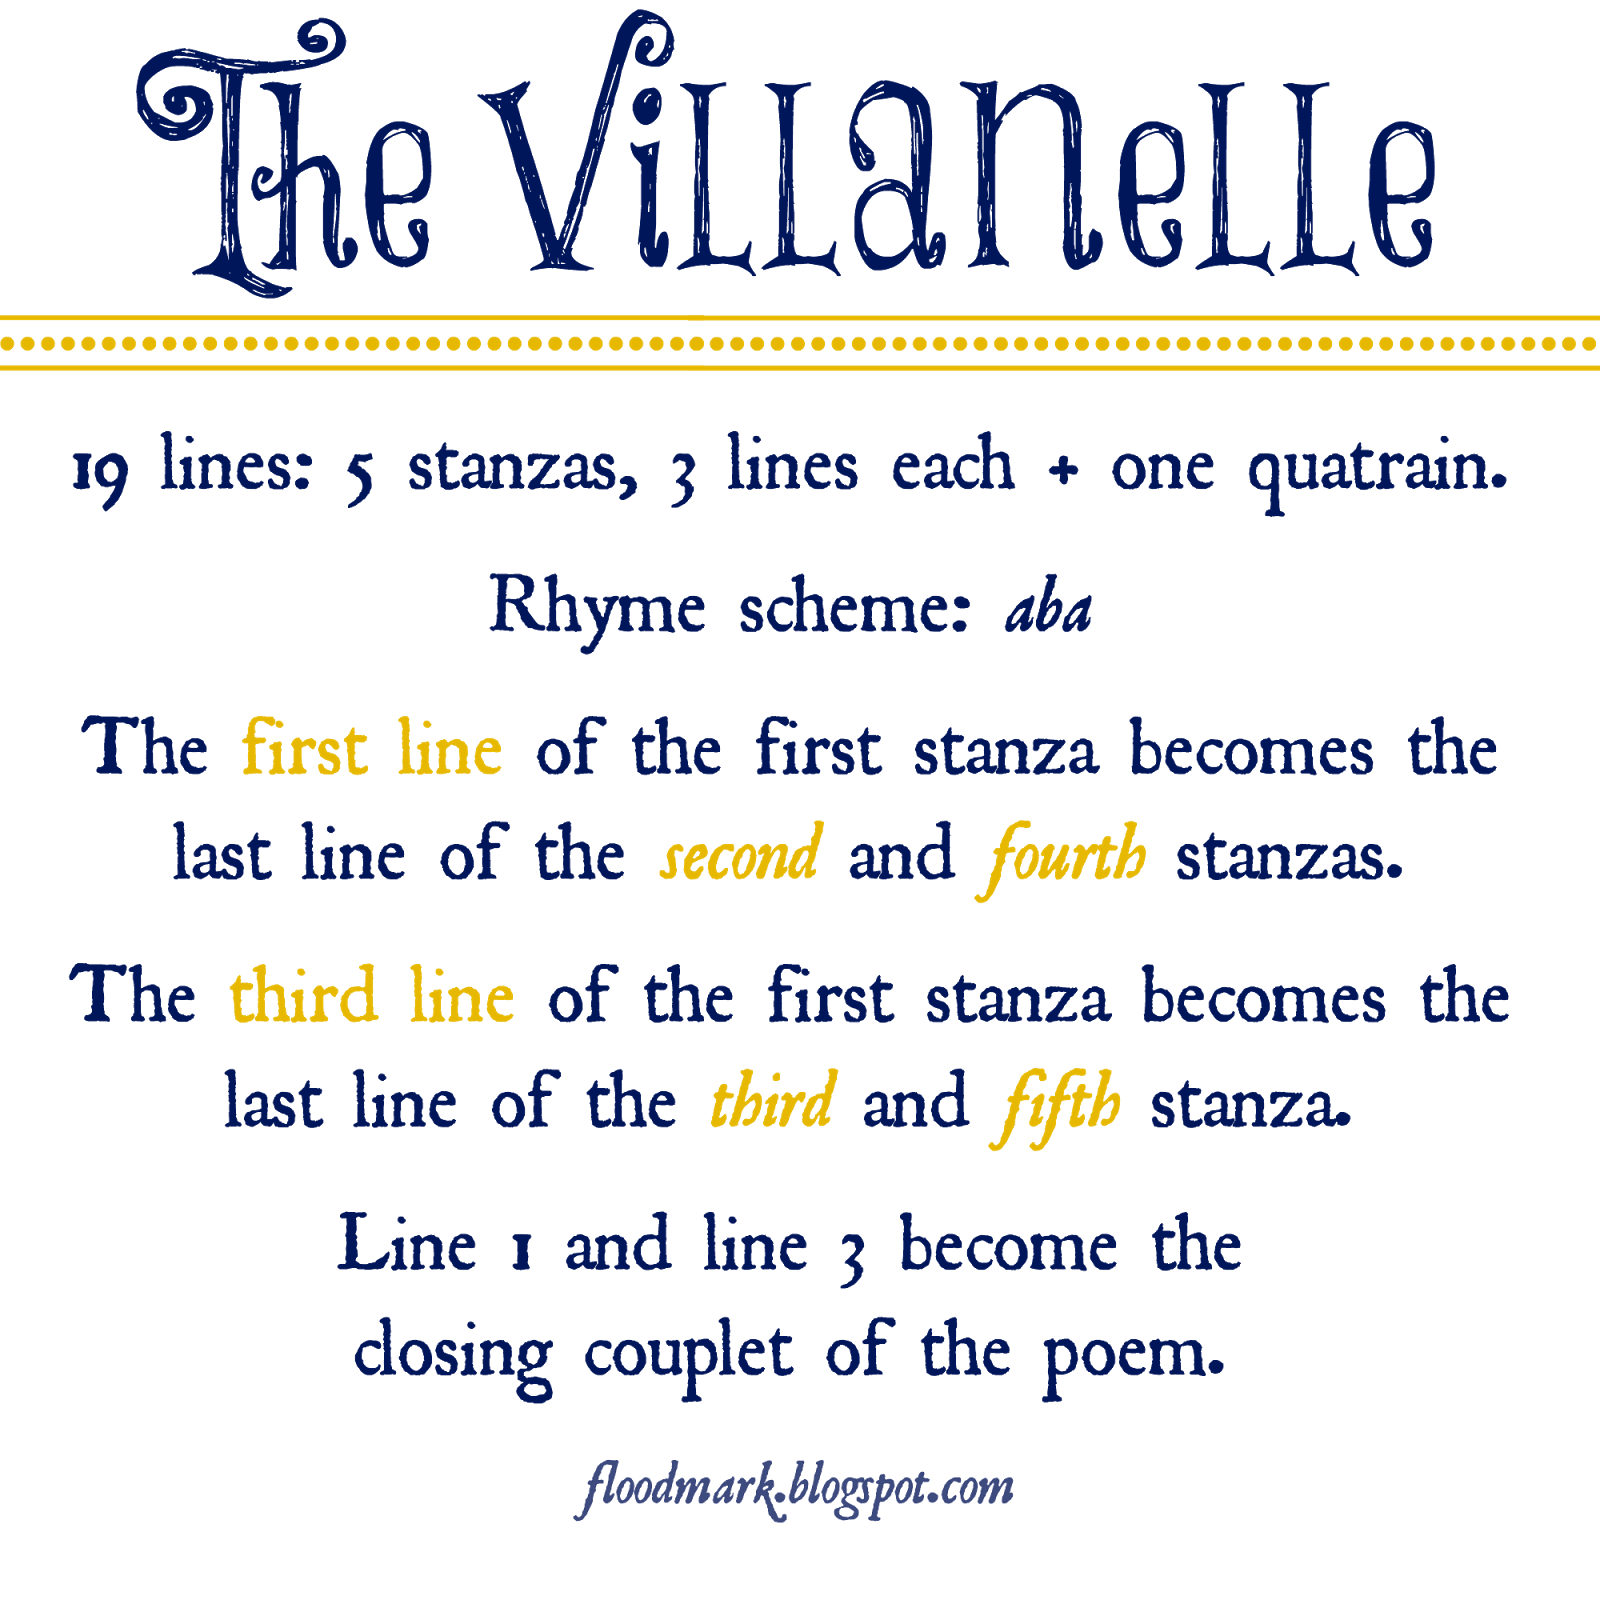 villanelle poem format Villanelles started in italy as song lyrics to a traditional folk dance the poetic form still keeps to the tradition of every now and then repeating a certain line like a refrain.